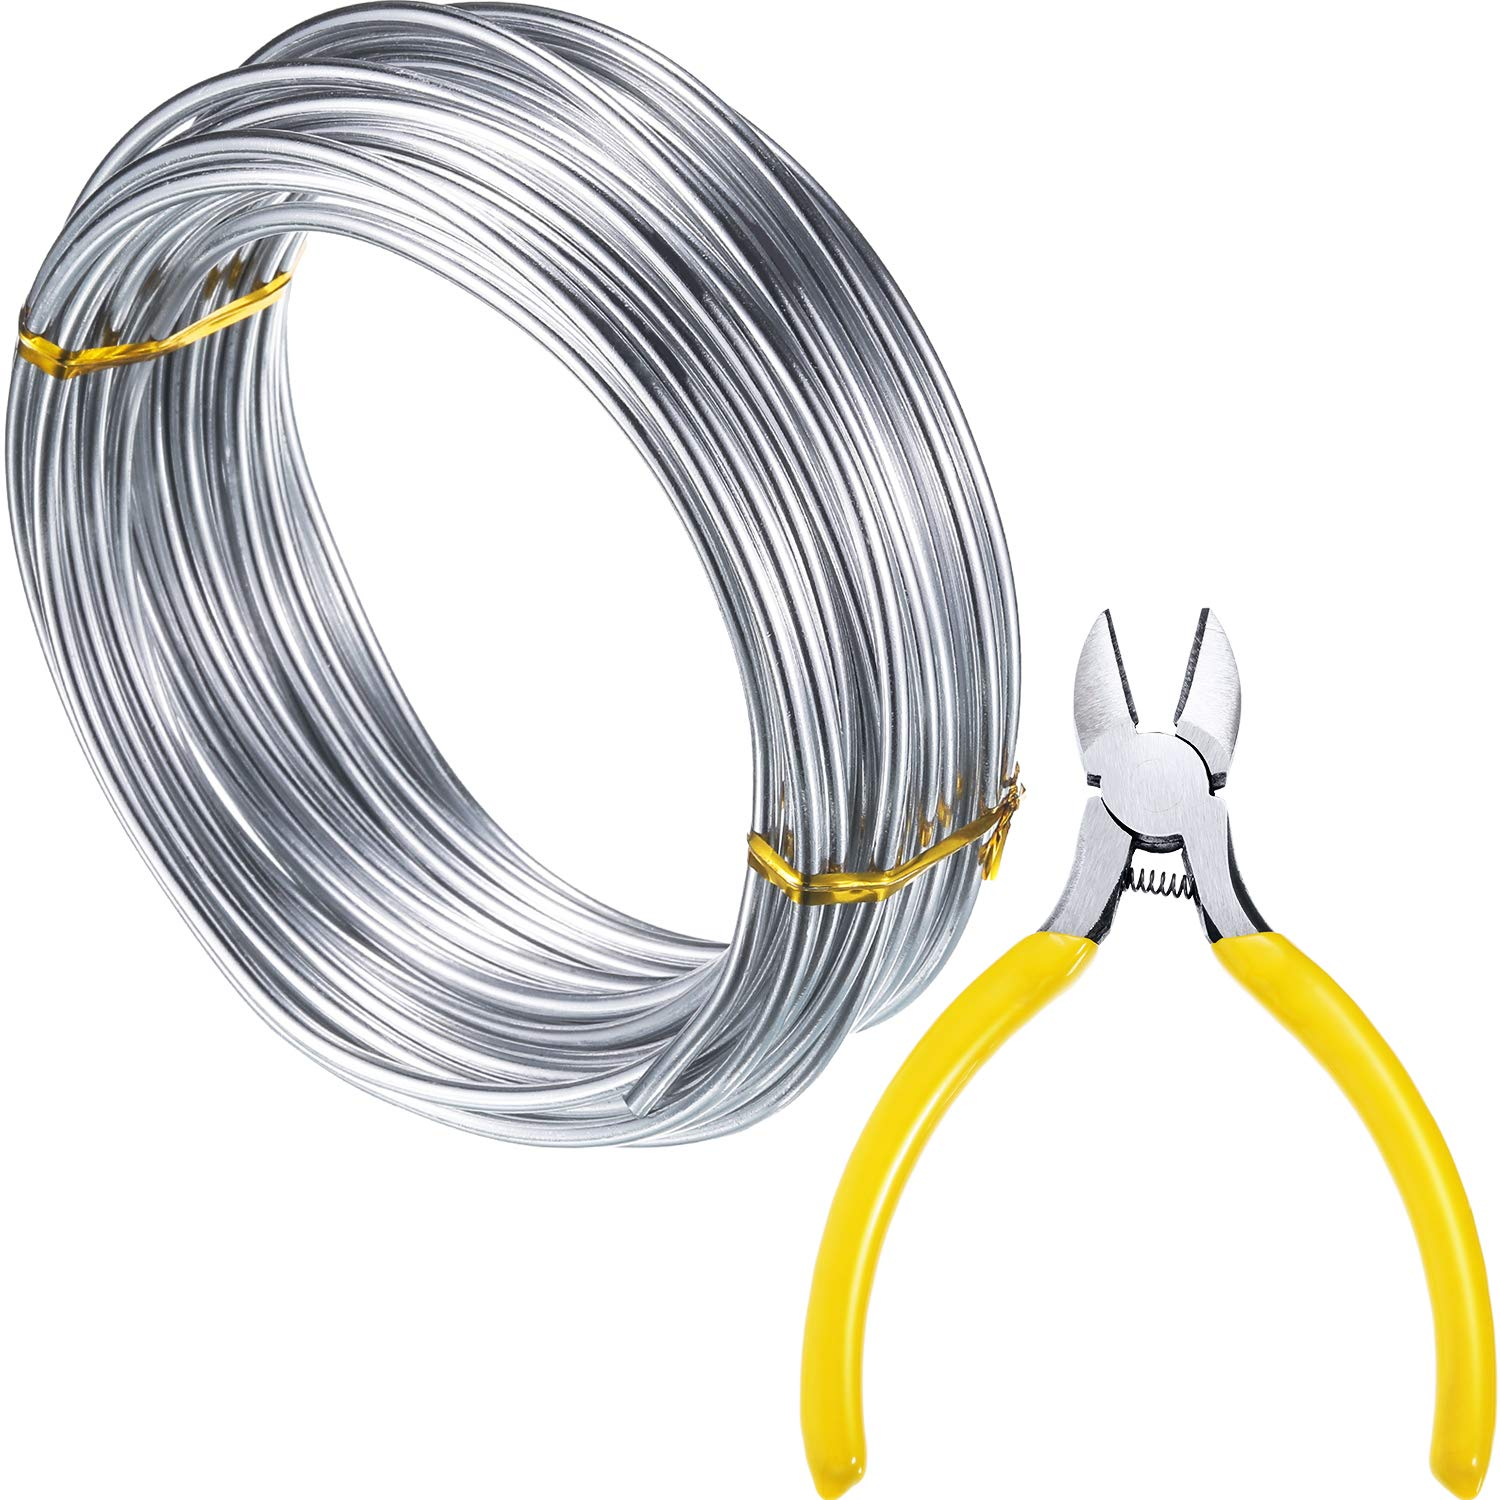 Tatuo 10 m Silver Aluminum Wire (3 mm), DIY Craft Wire, Soft and Bendable, Add a Round-Nosed Plier to Cut